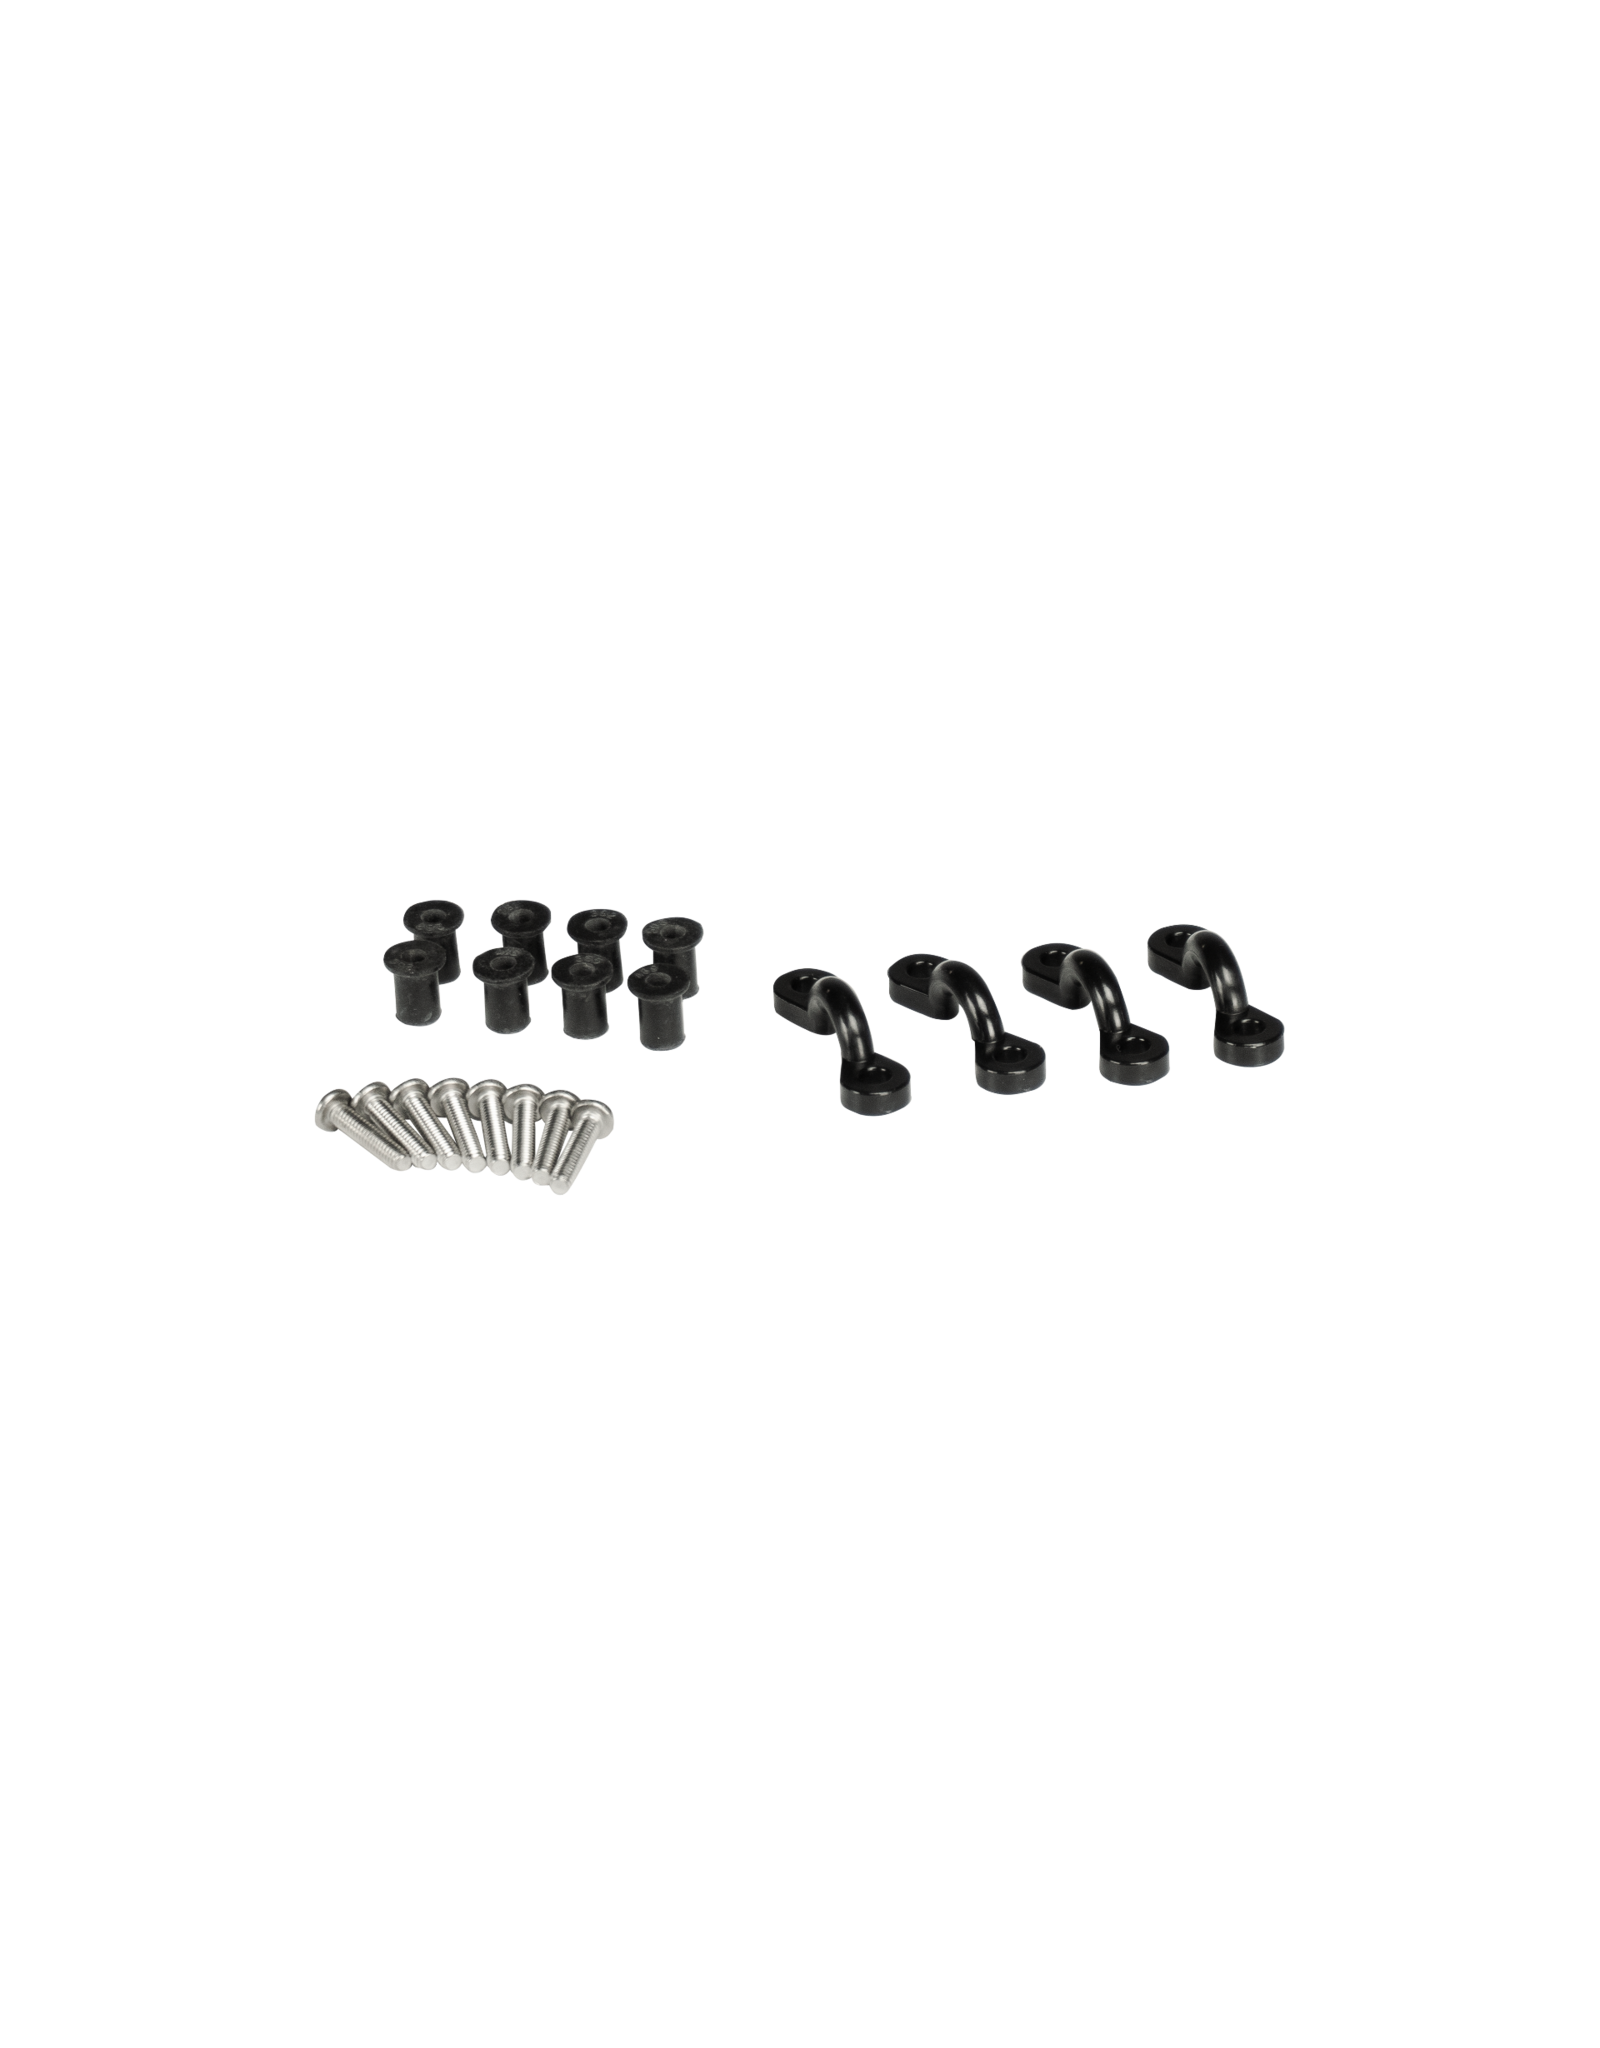 Pelican Pelican Accessory Eyelet Kit (Pack of 4)